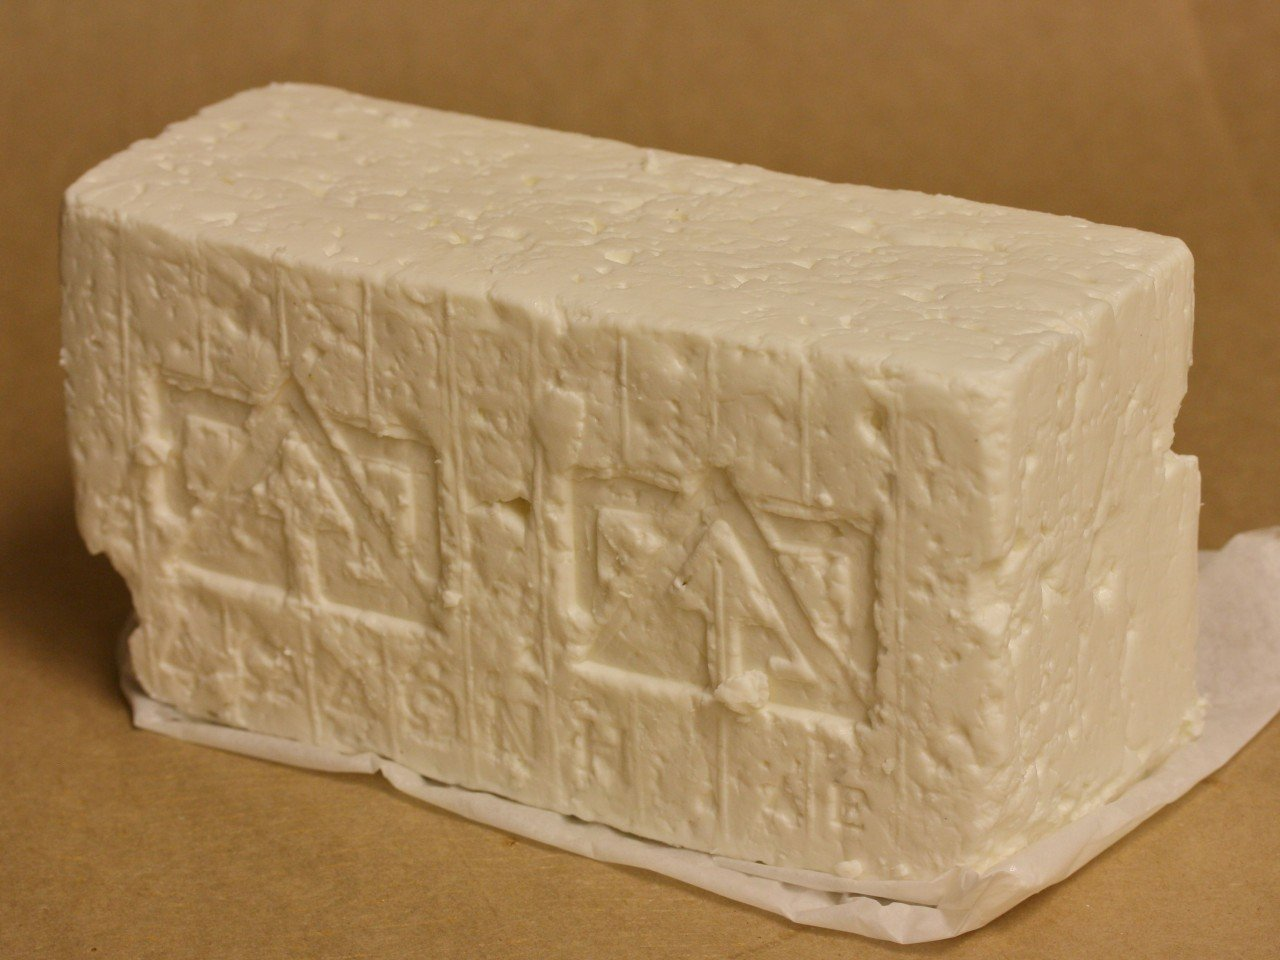 Greek Feta Cheese DODONI, approx. 4 lb, Deli Fresh